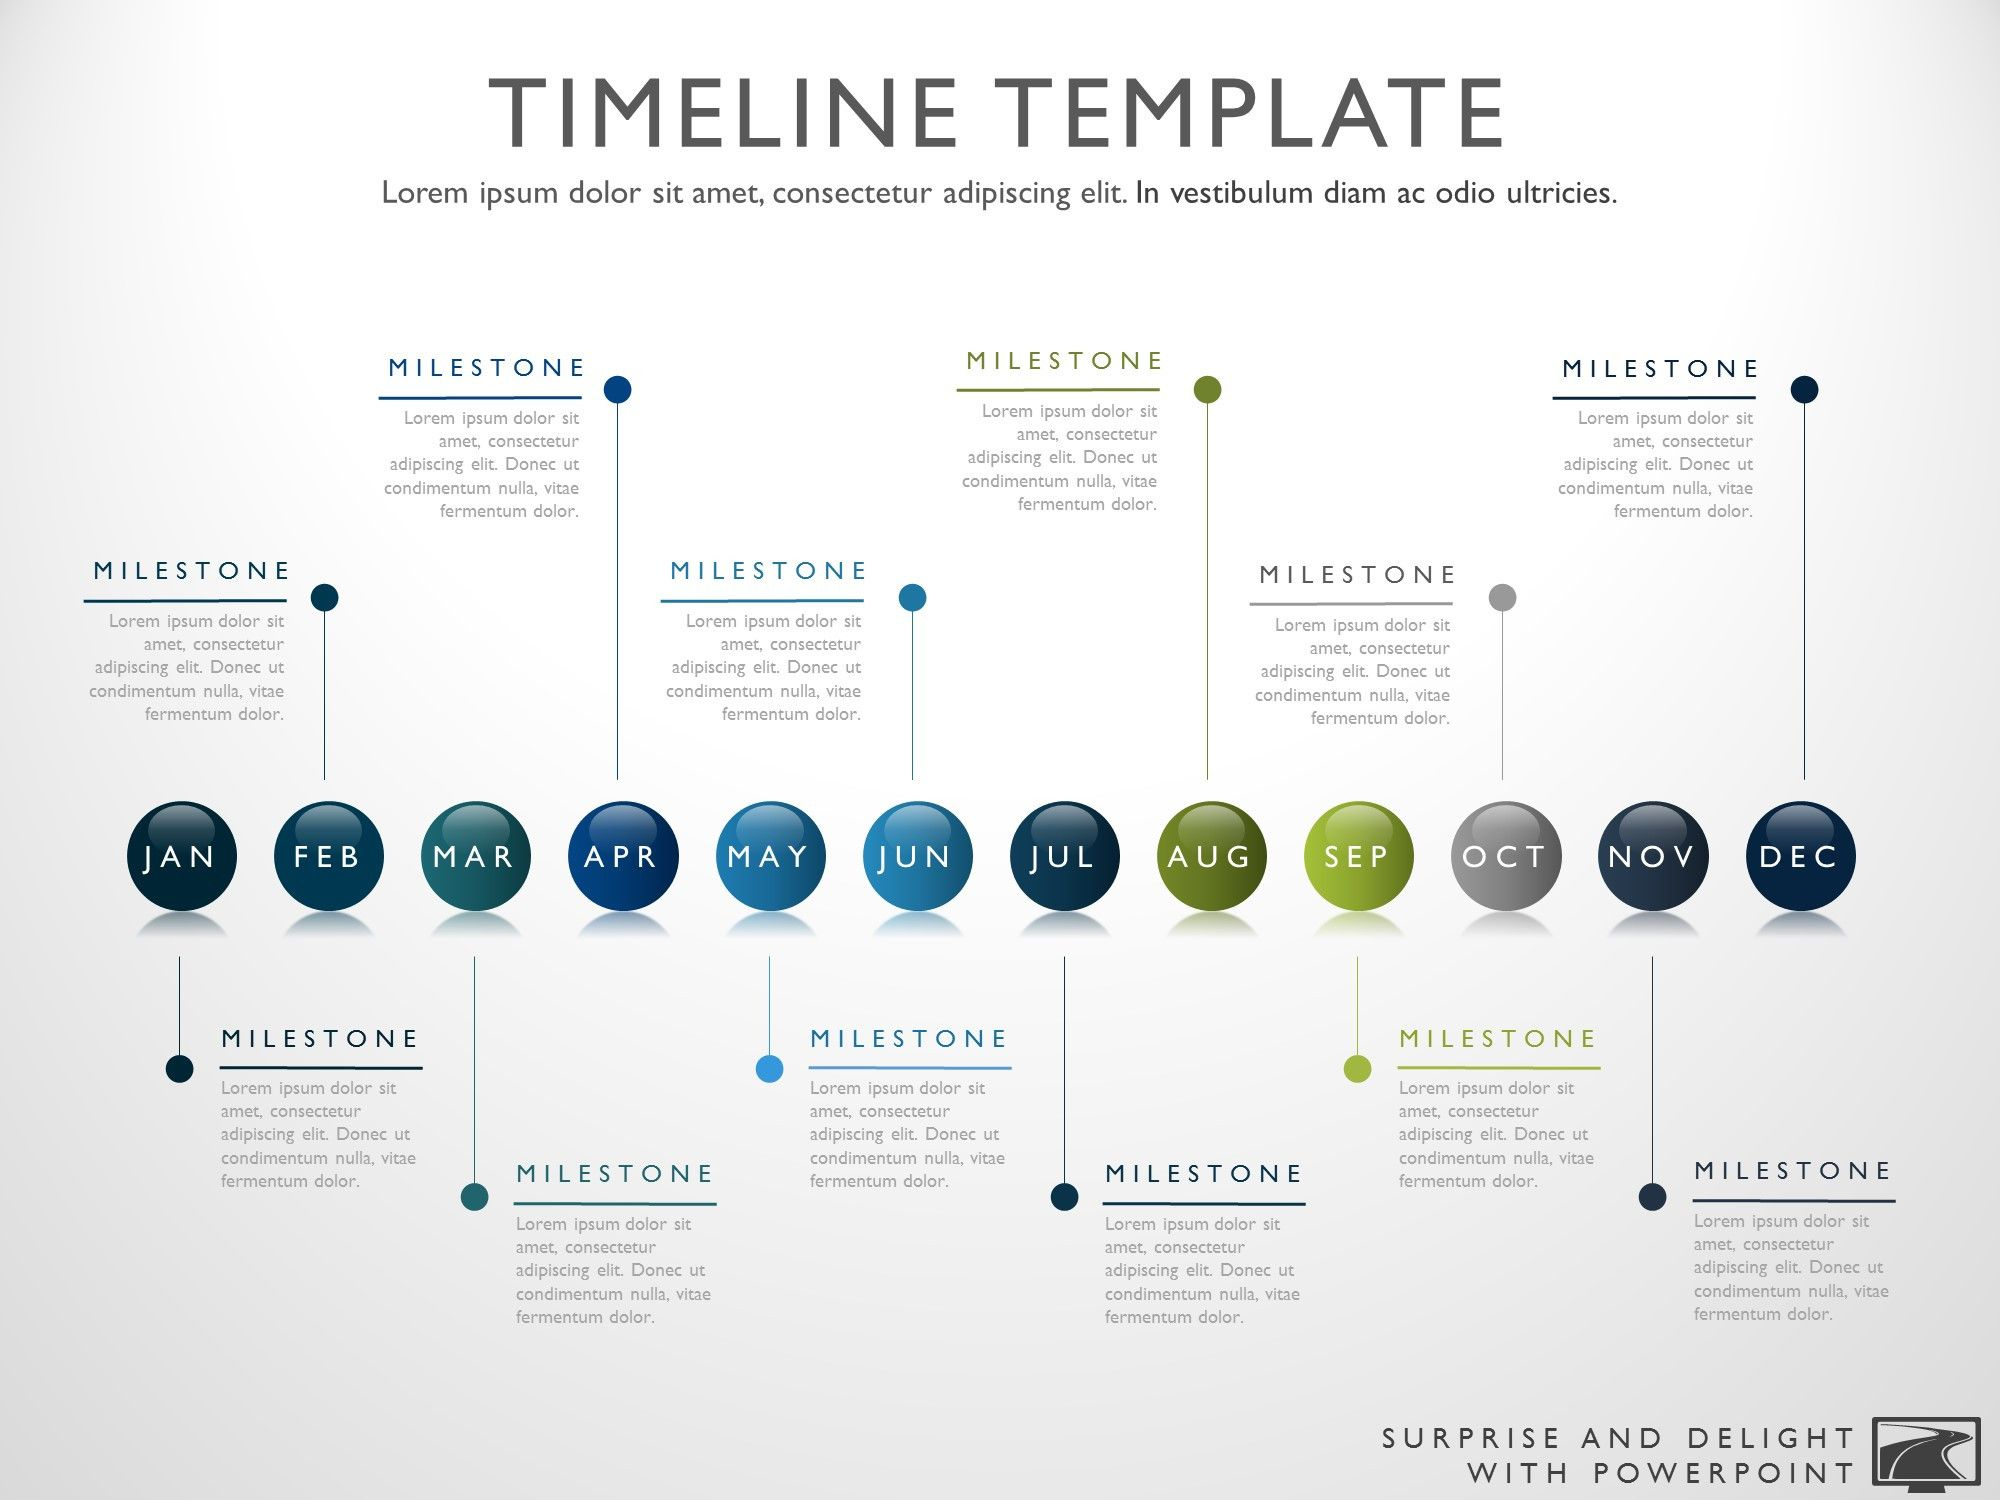 Timeline Template  My Product Roadmap  Remodeling Tools